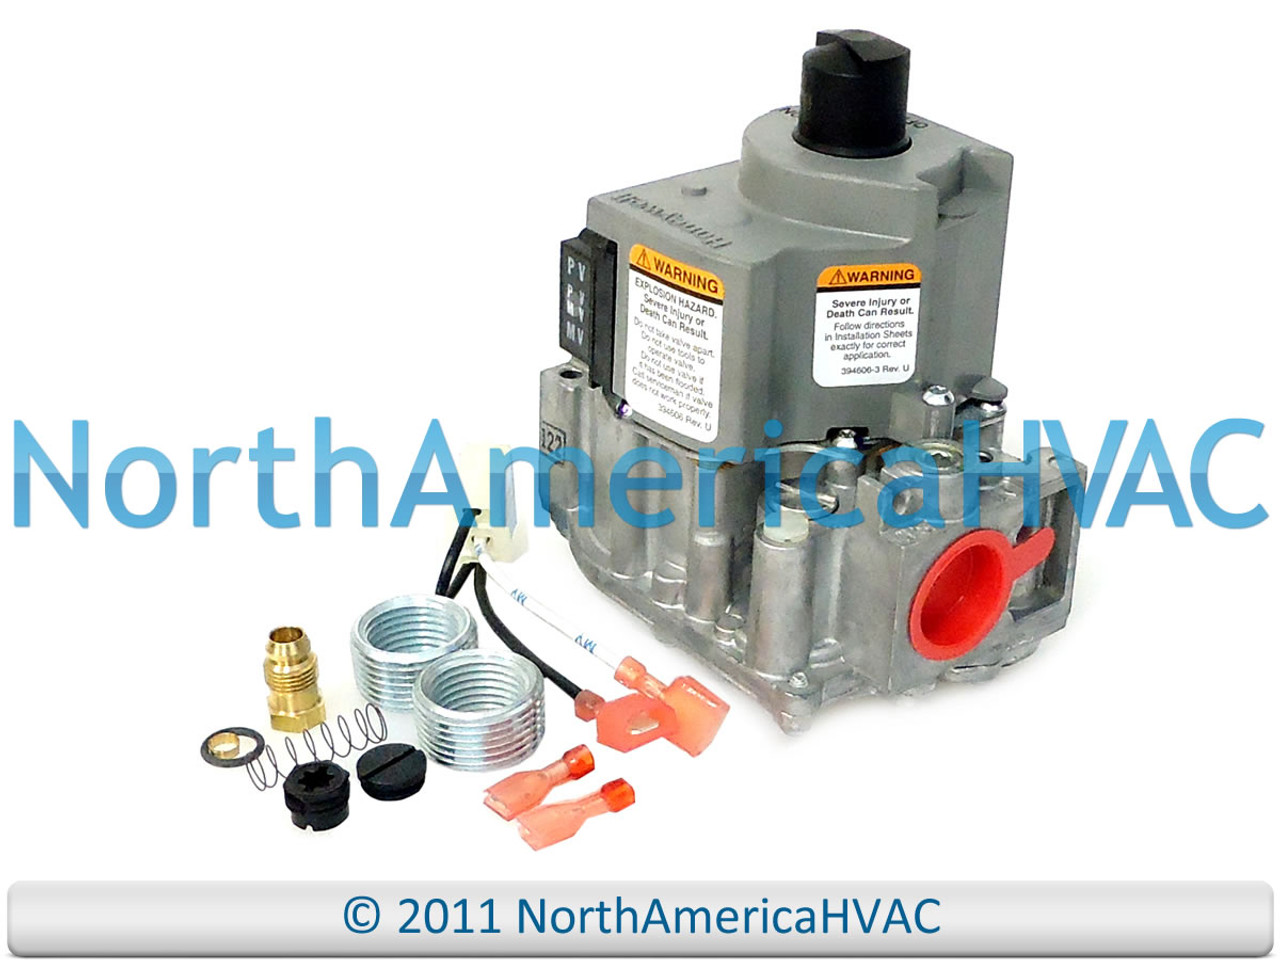 VR8205H8016 Upgraded Replacement for Ruud Furnace Control Gas Valve